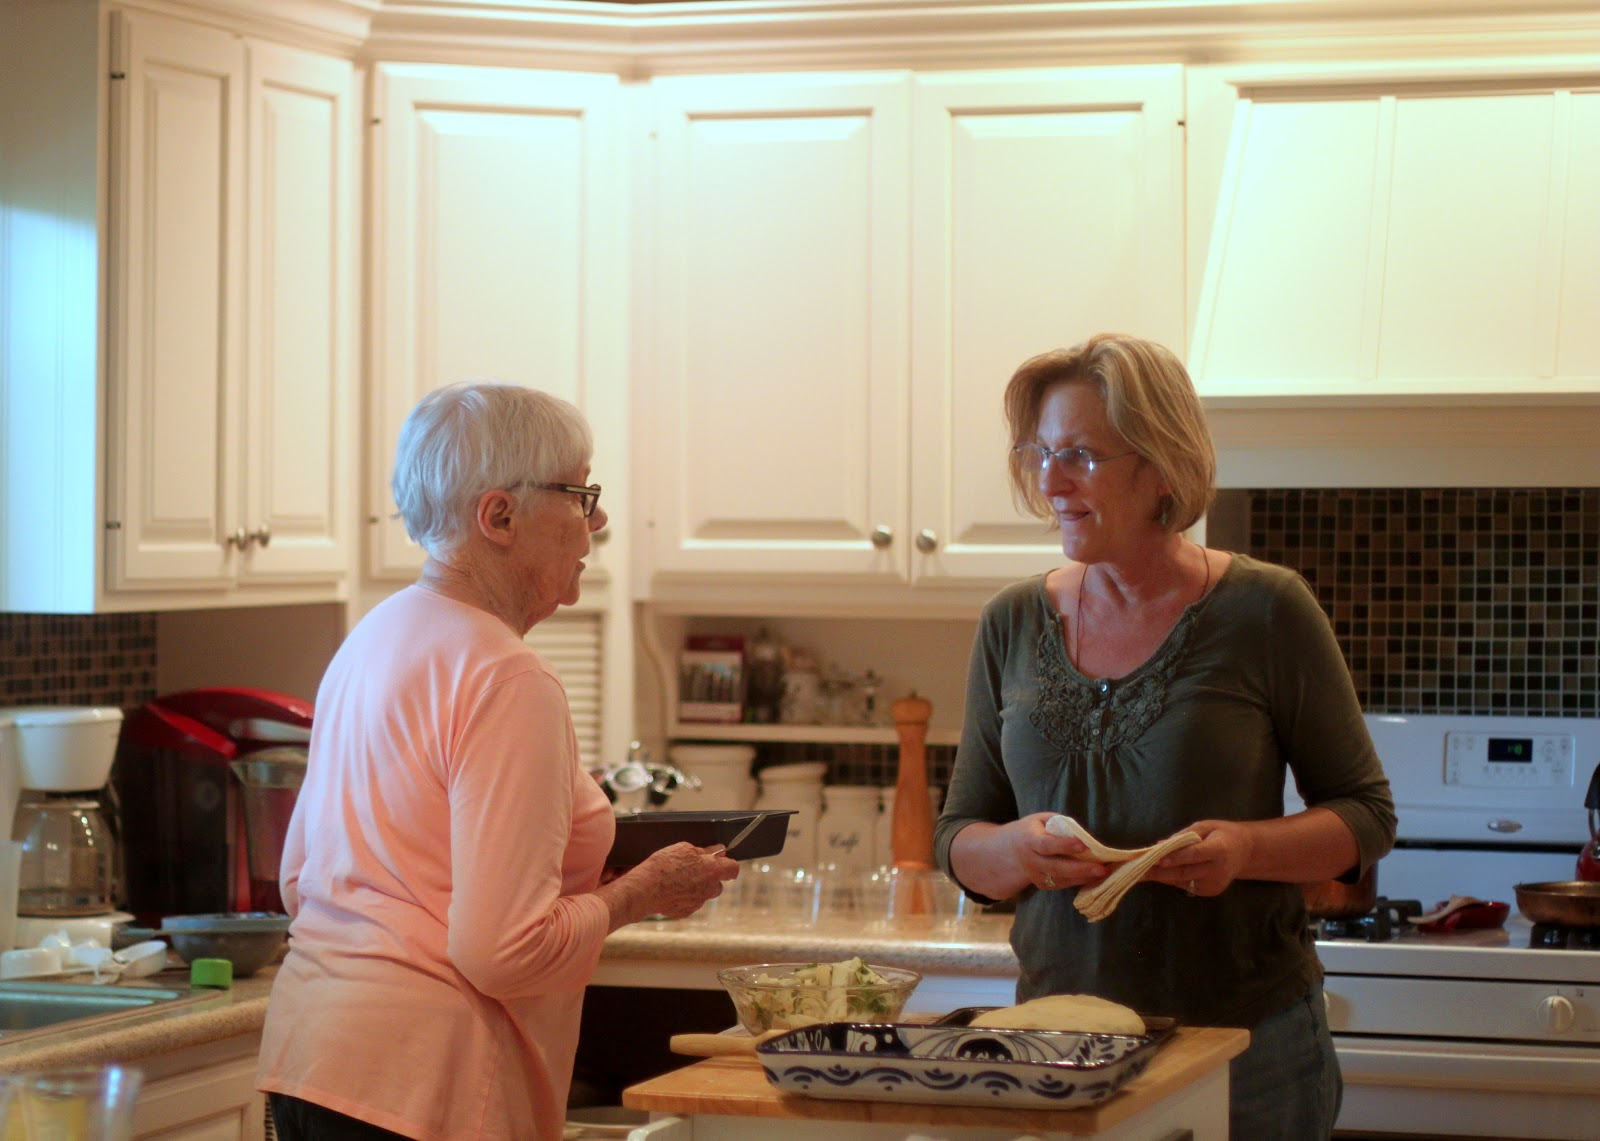 Blue apron logistics